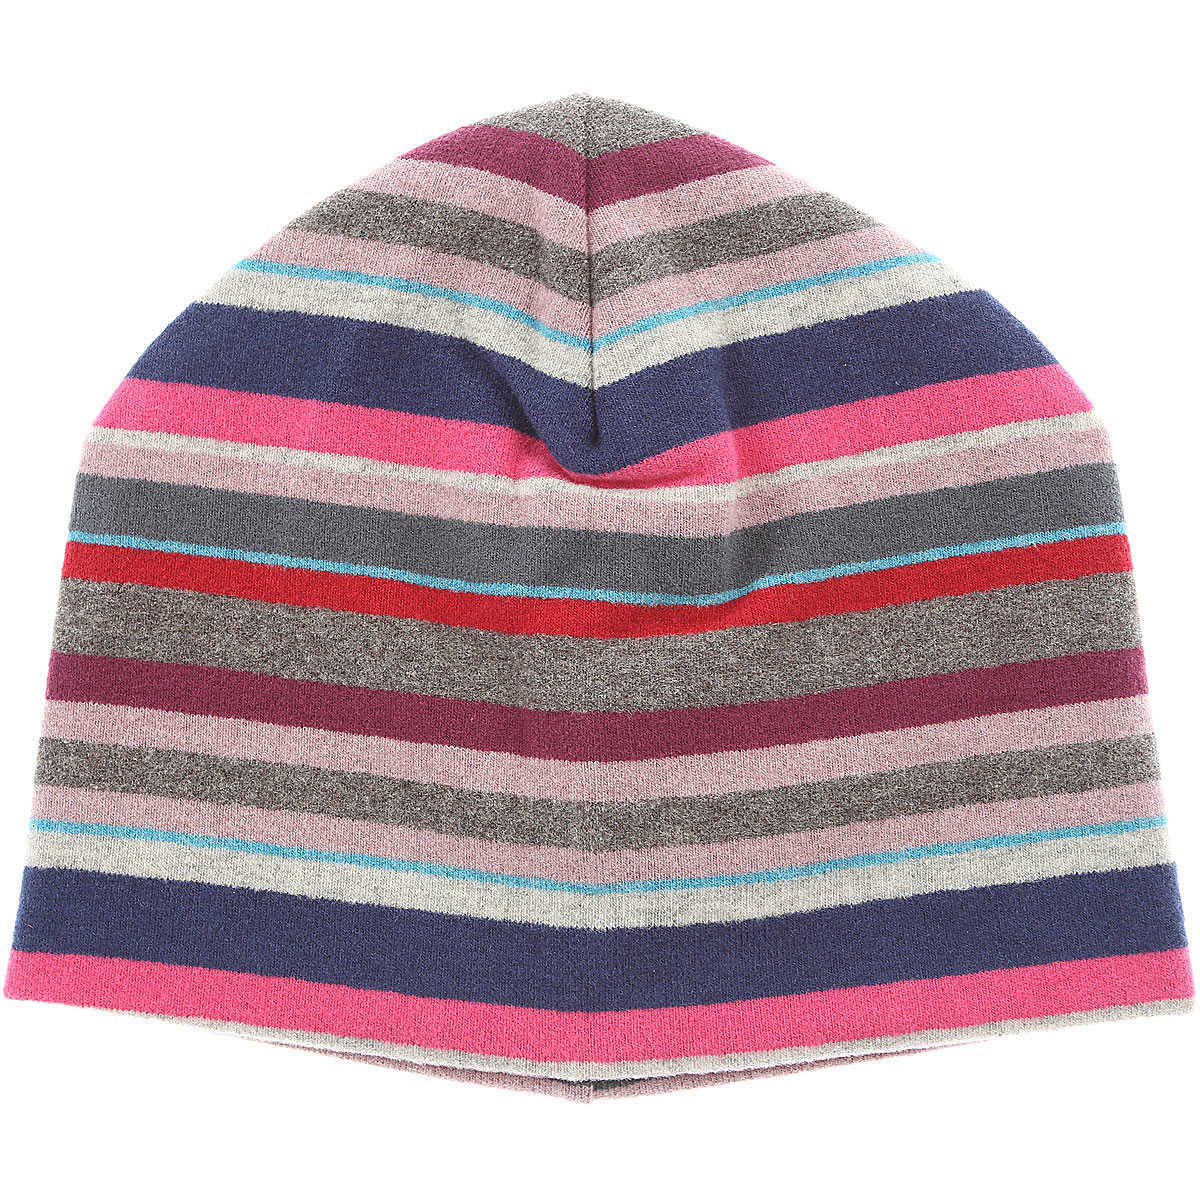 Gallo Kids Hats for Girls On Sale in Outlet Grey UK - GOOFASH - Womens HATS